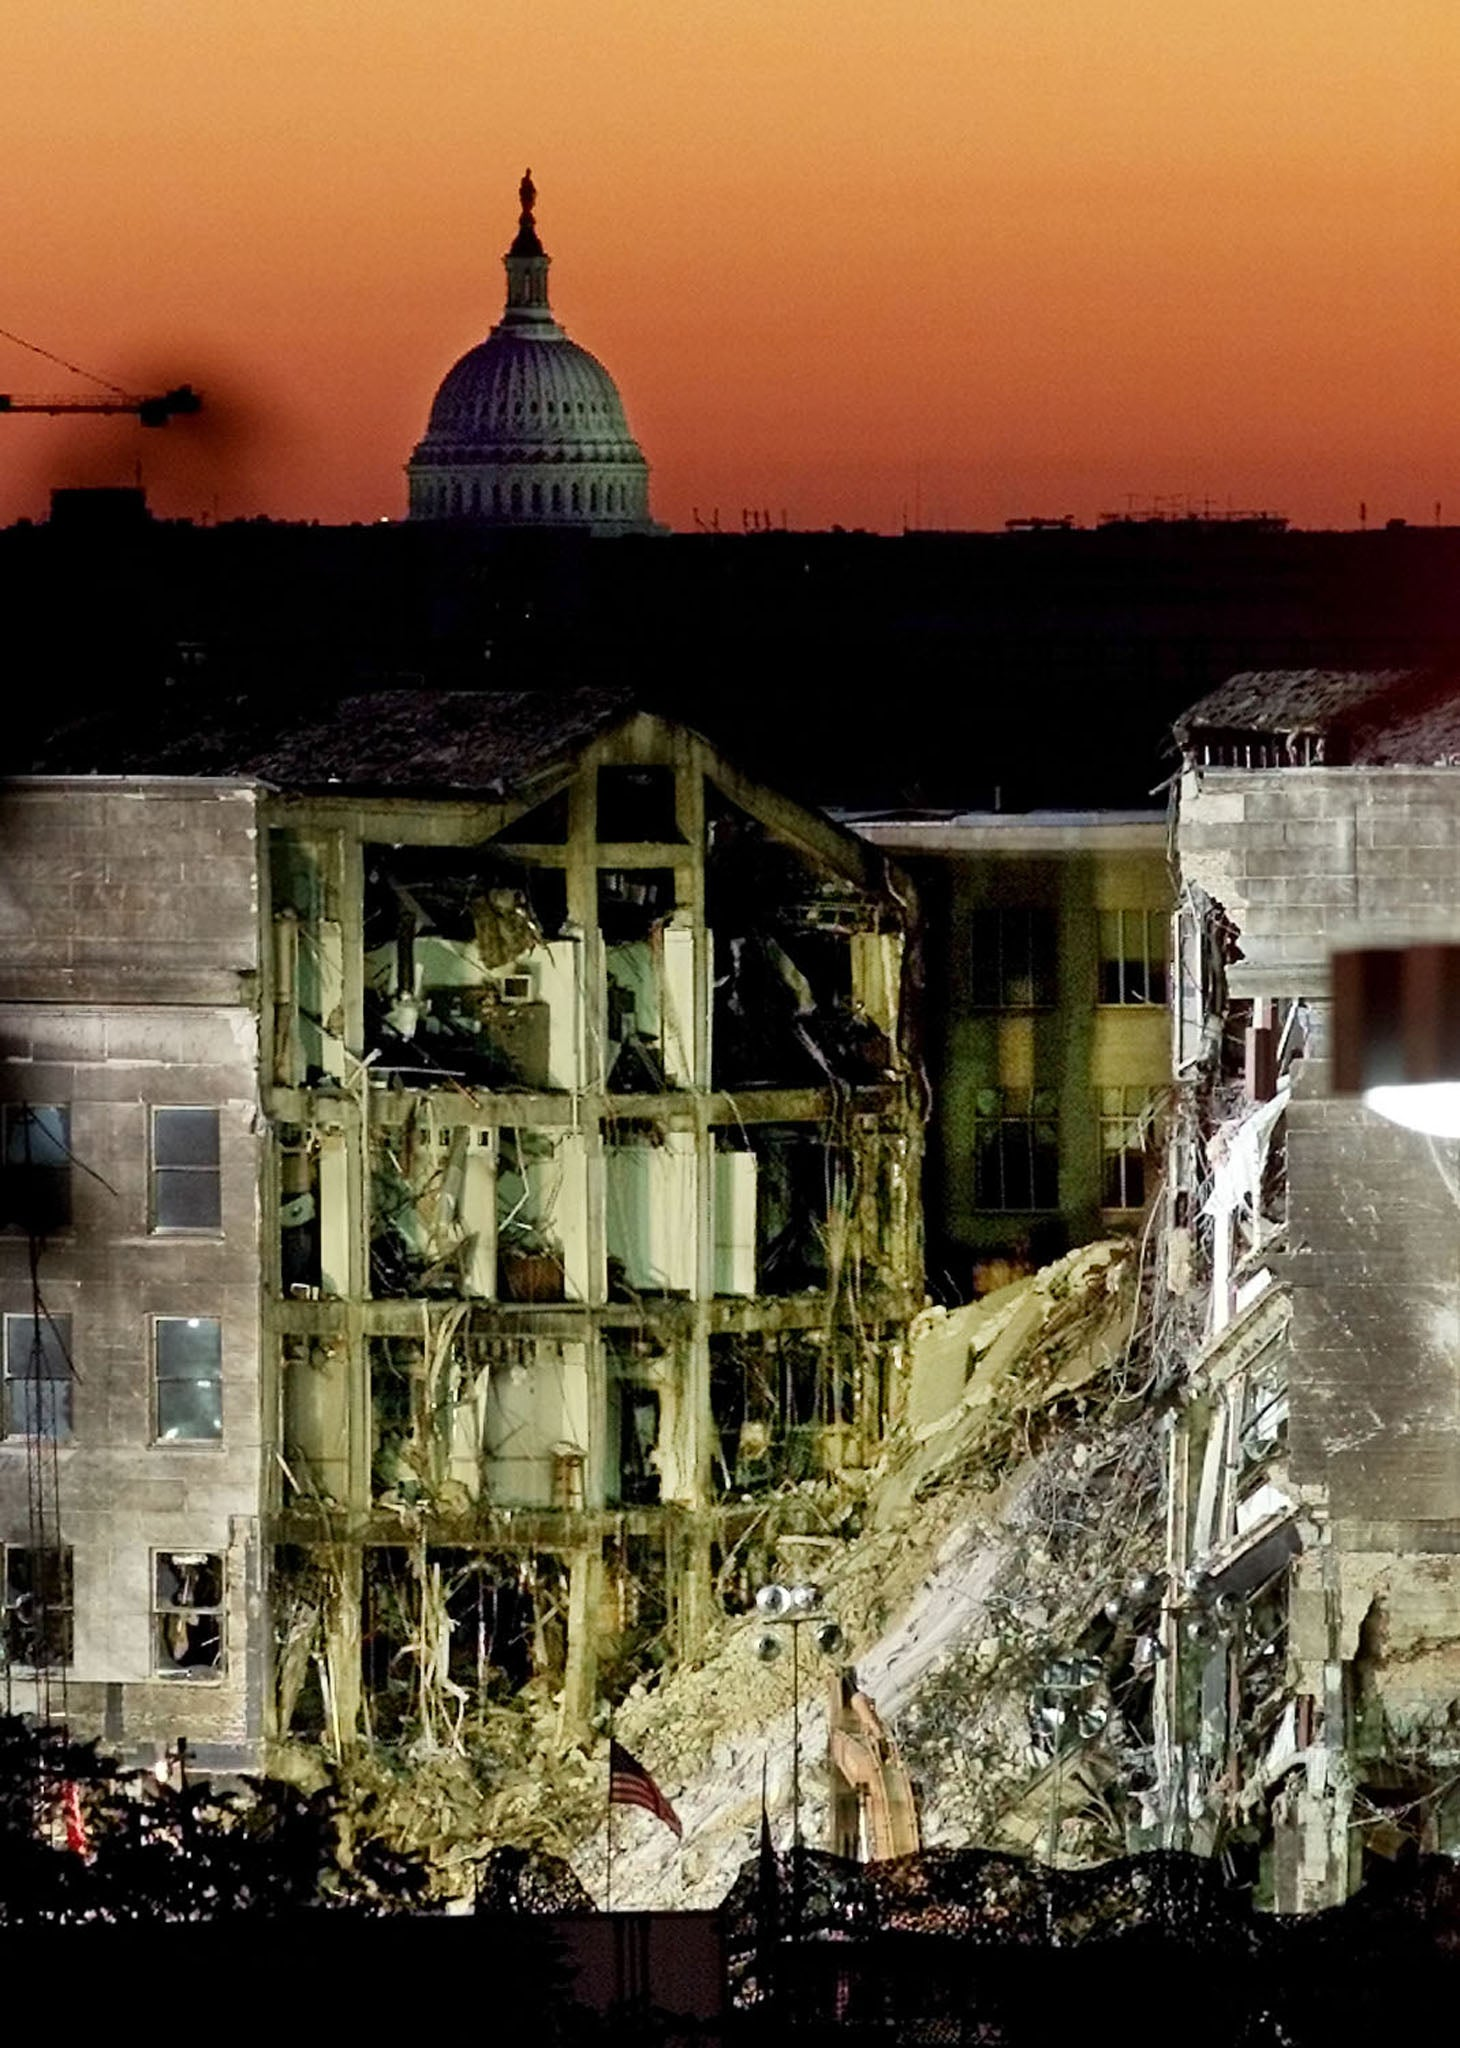 photos of and the days after six days after the attack on the pentagon at sunrise 17 2001